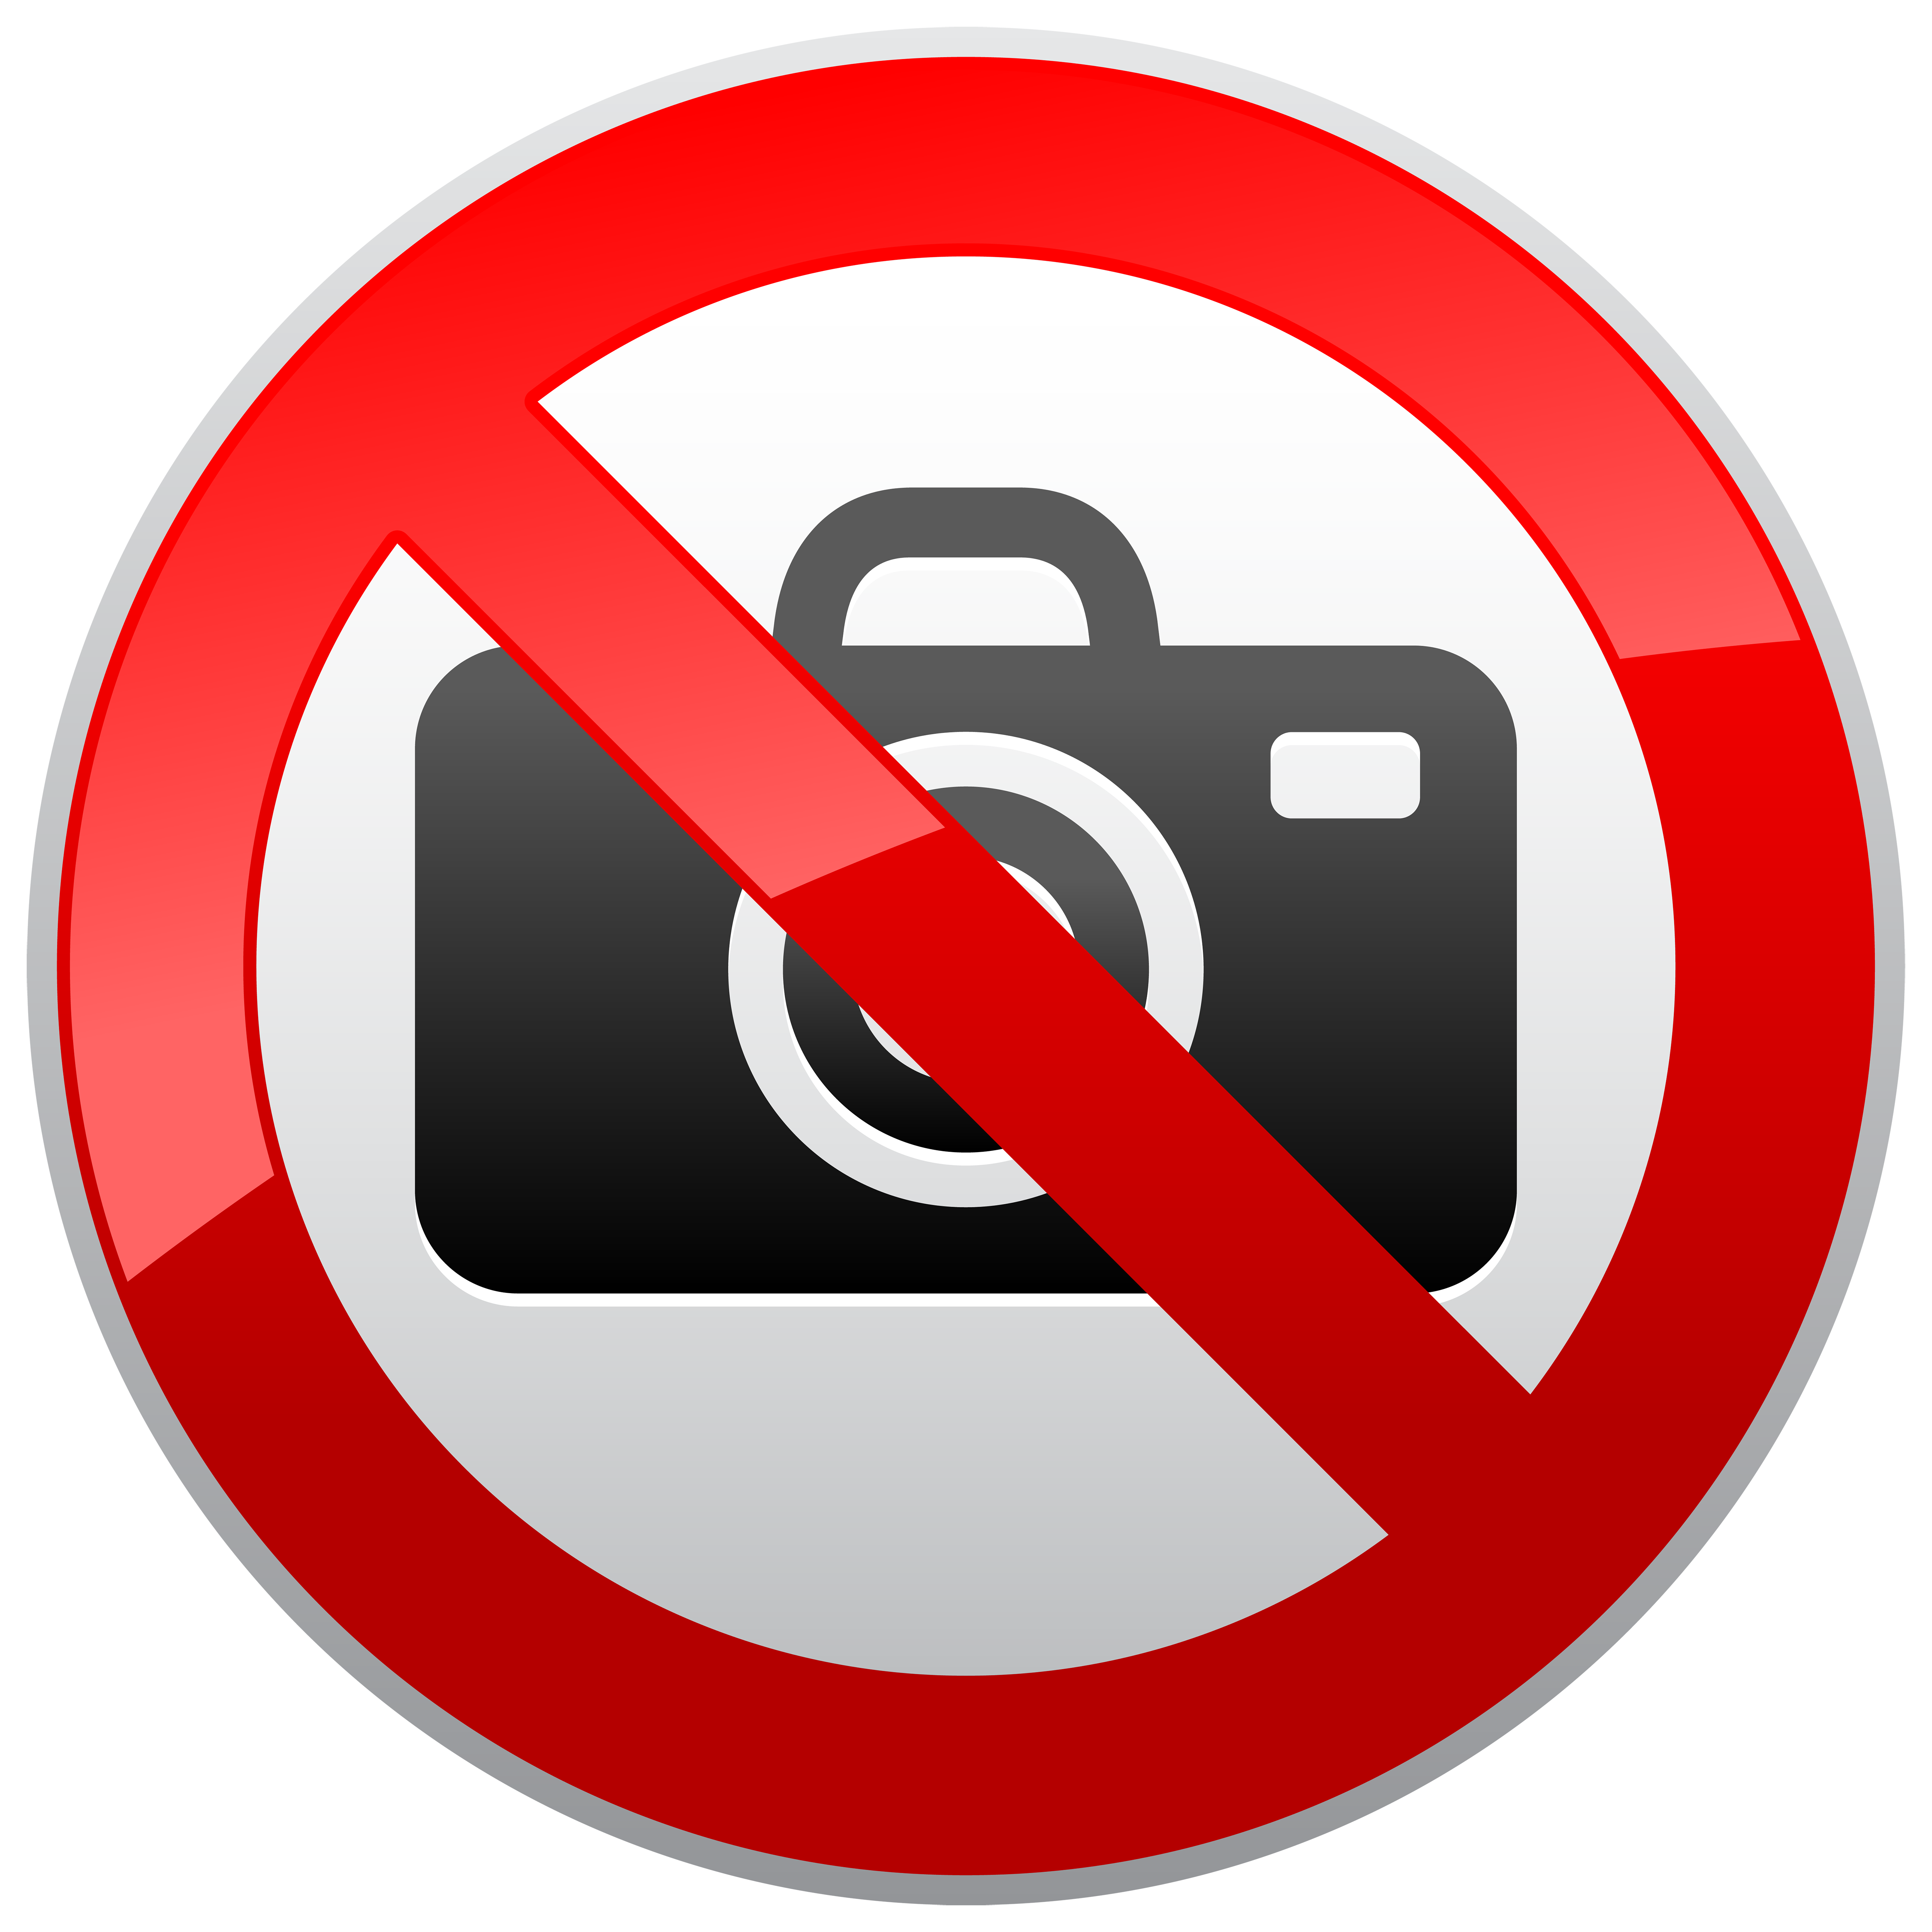 banner library stock Photography prohibition sign png. No clipart